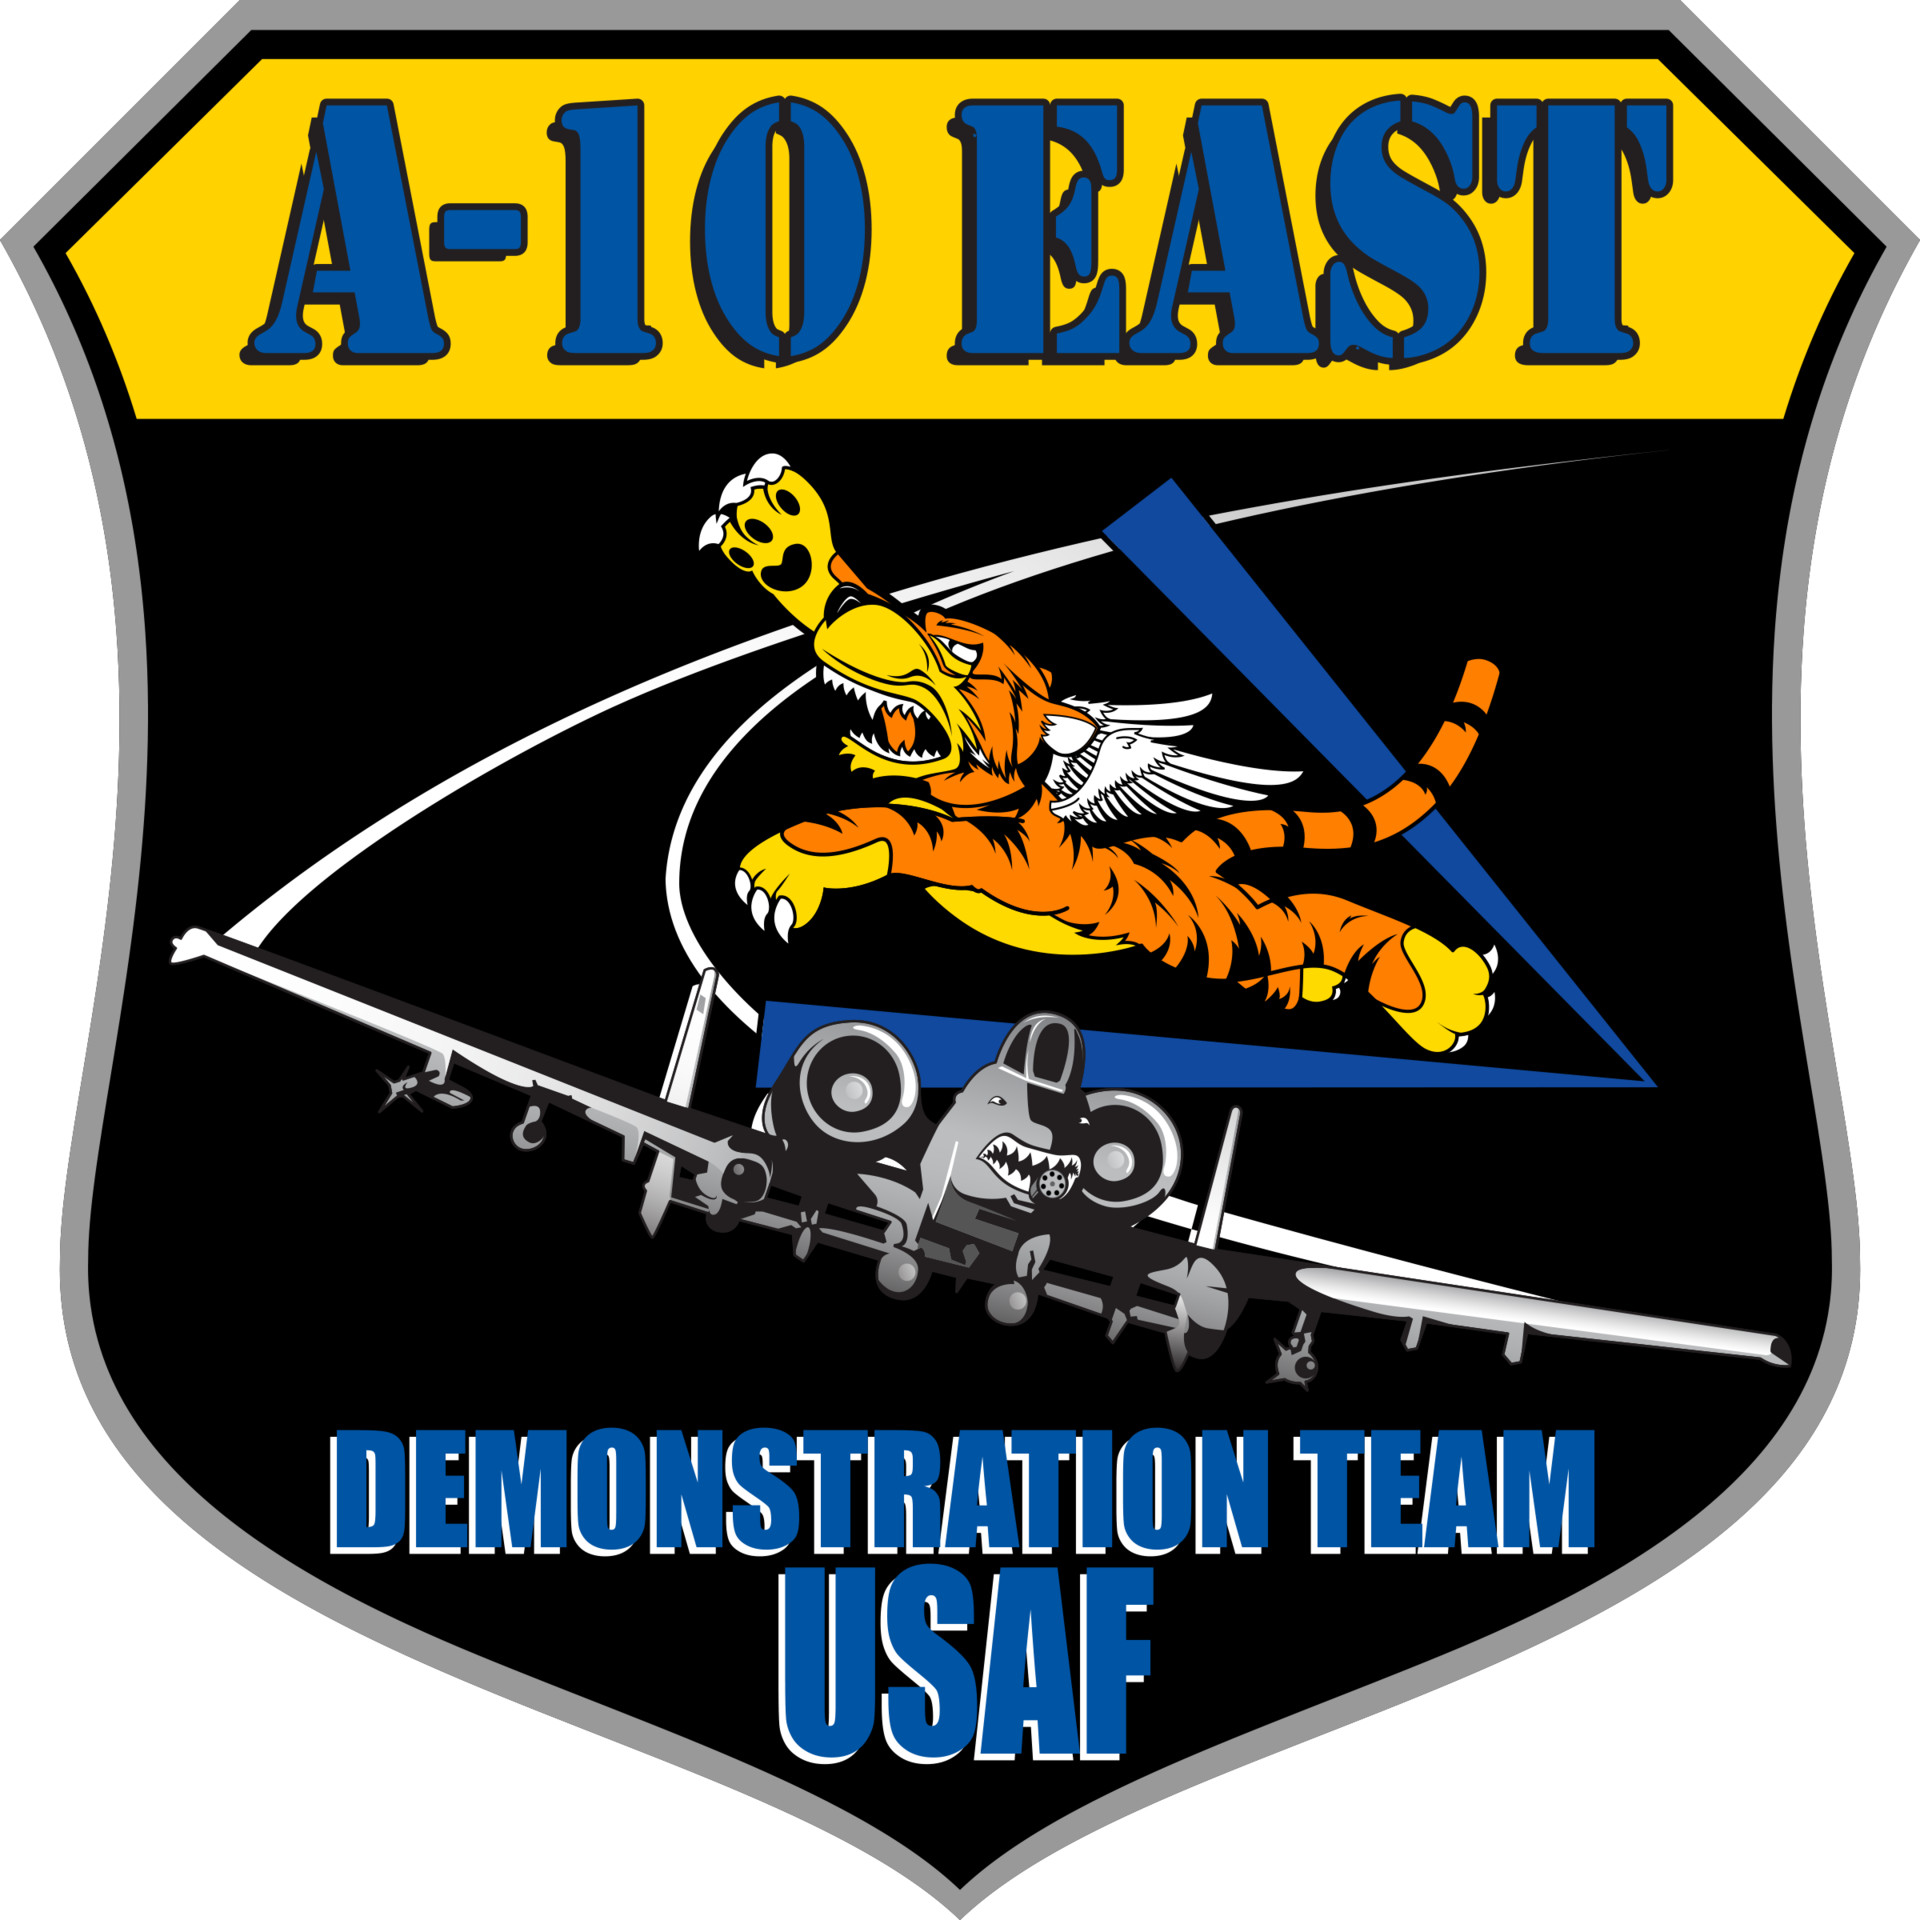 Nicholas hall patches edited 0017 a 10 east demo team2a